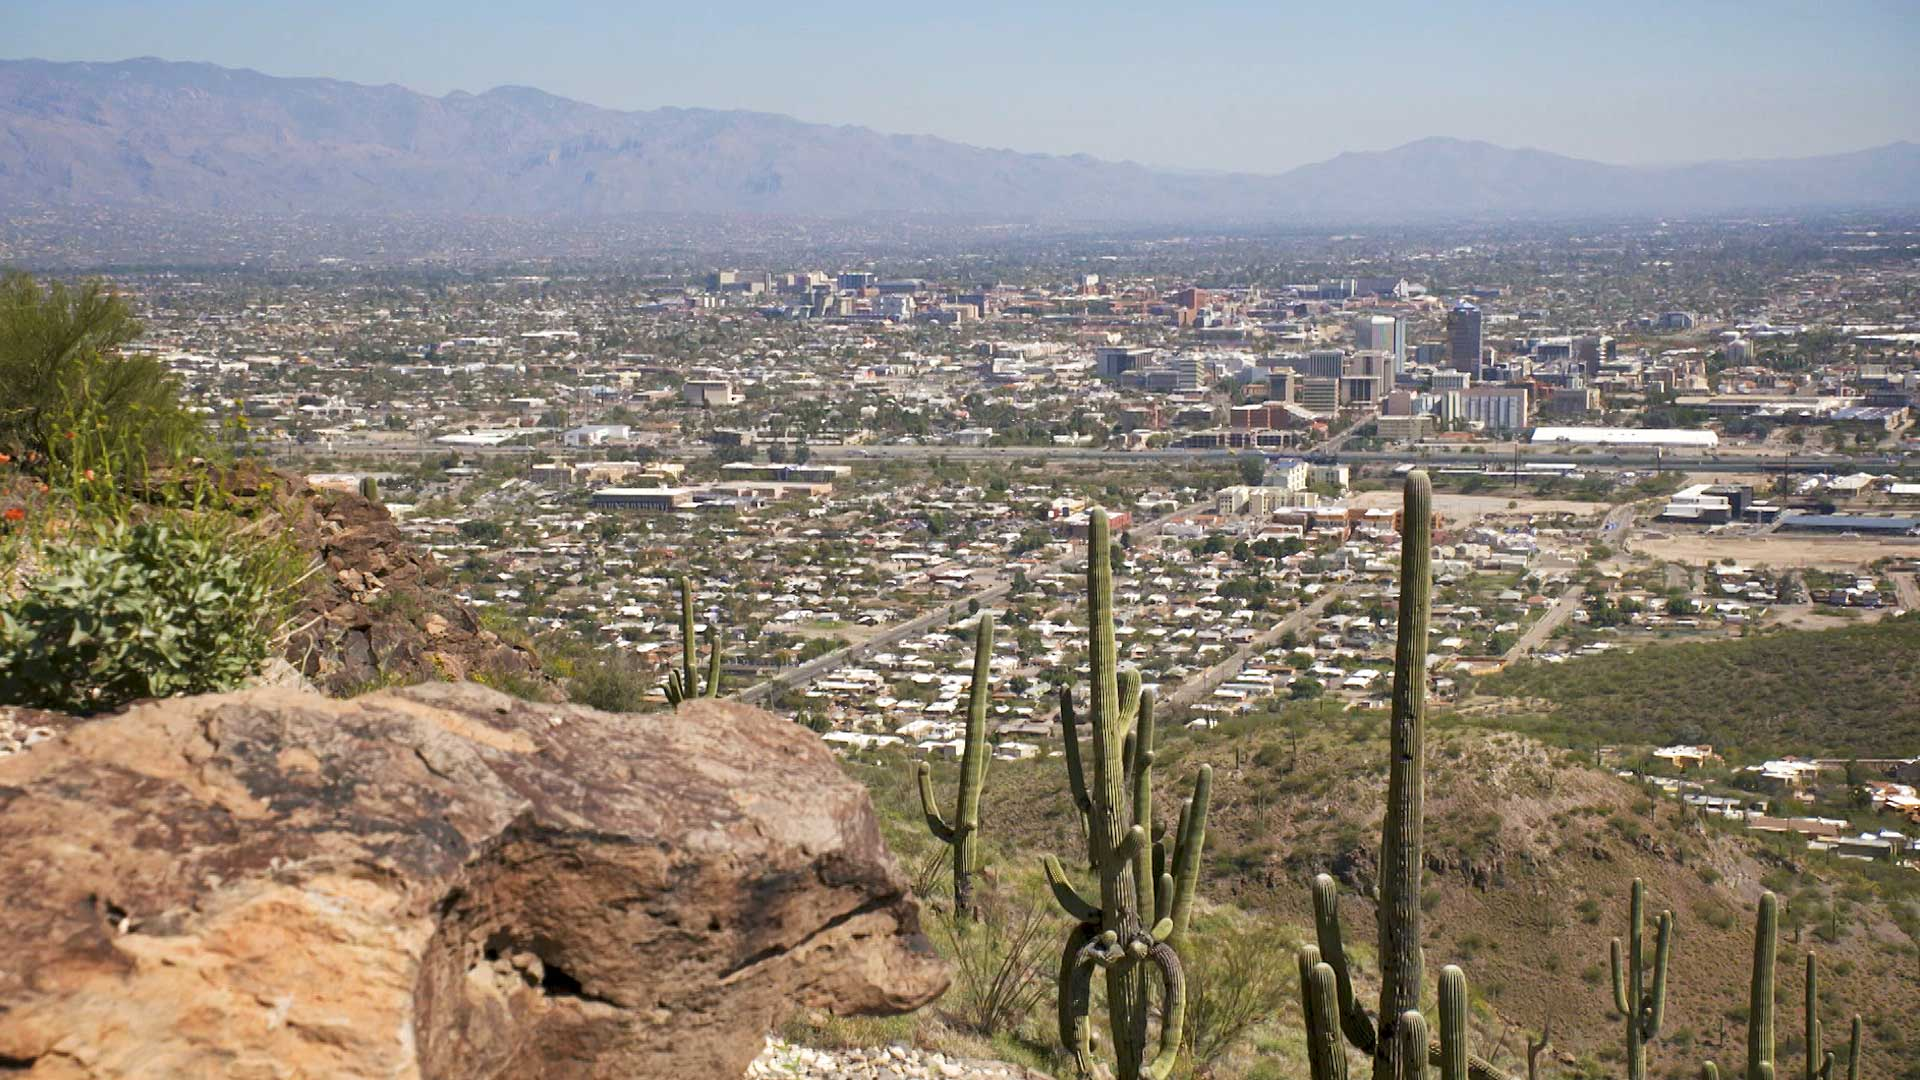 The city of Tucson observed from Tumamoc Hill.